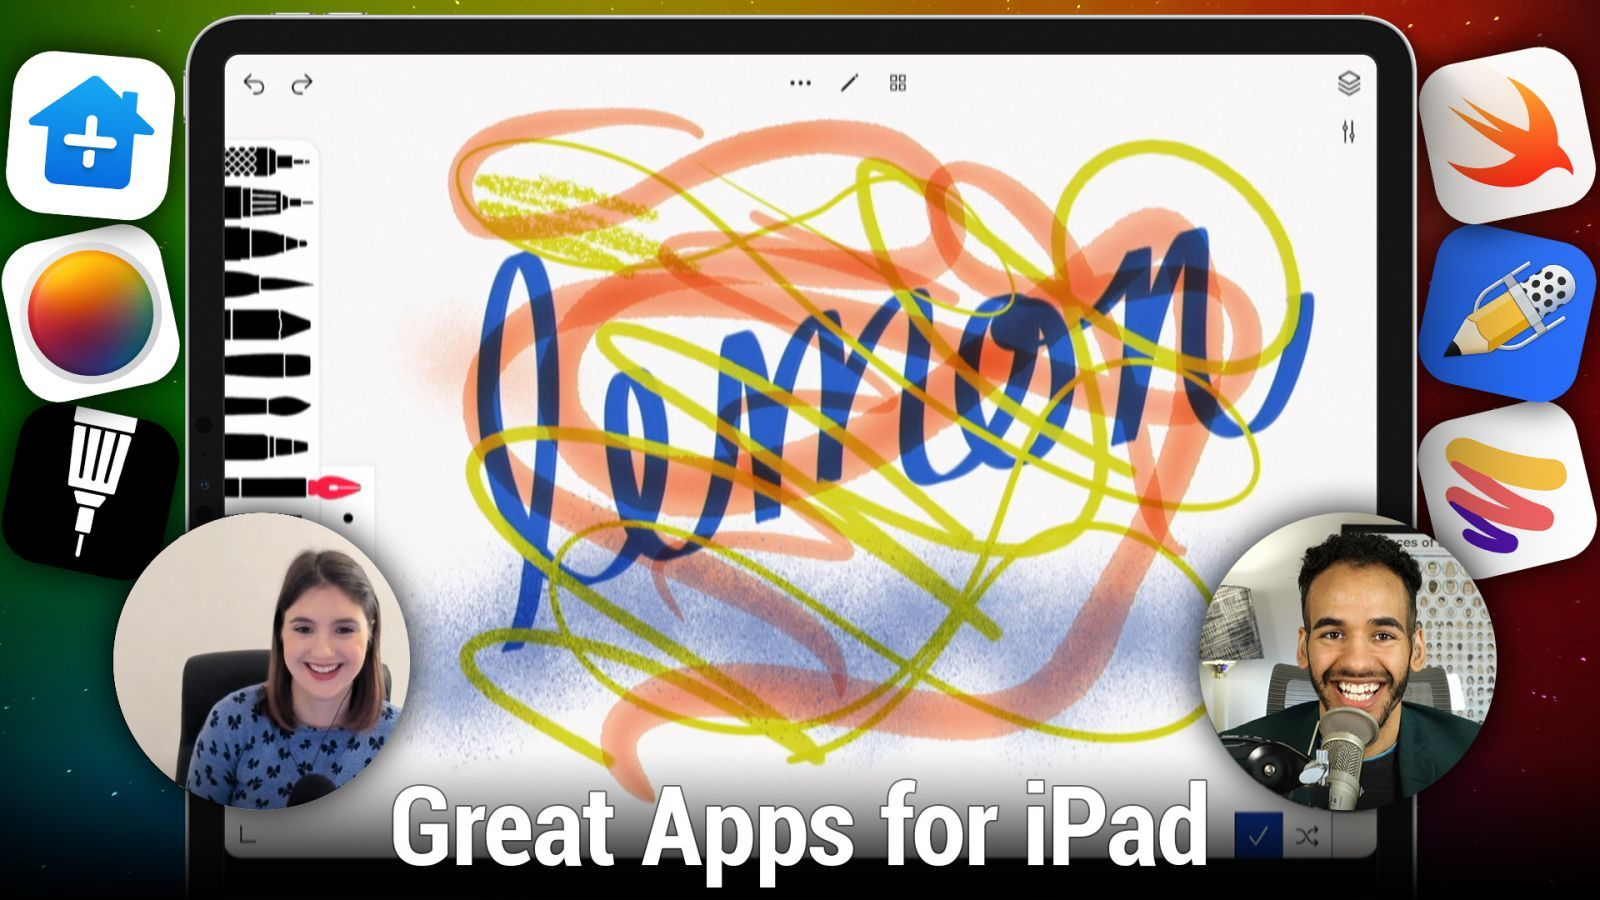 iOS 535: Great Apps for iPad - Paper, Notability, Tayasui Sketches, Pixelmator Photo, and more!